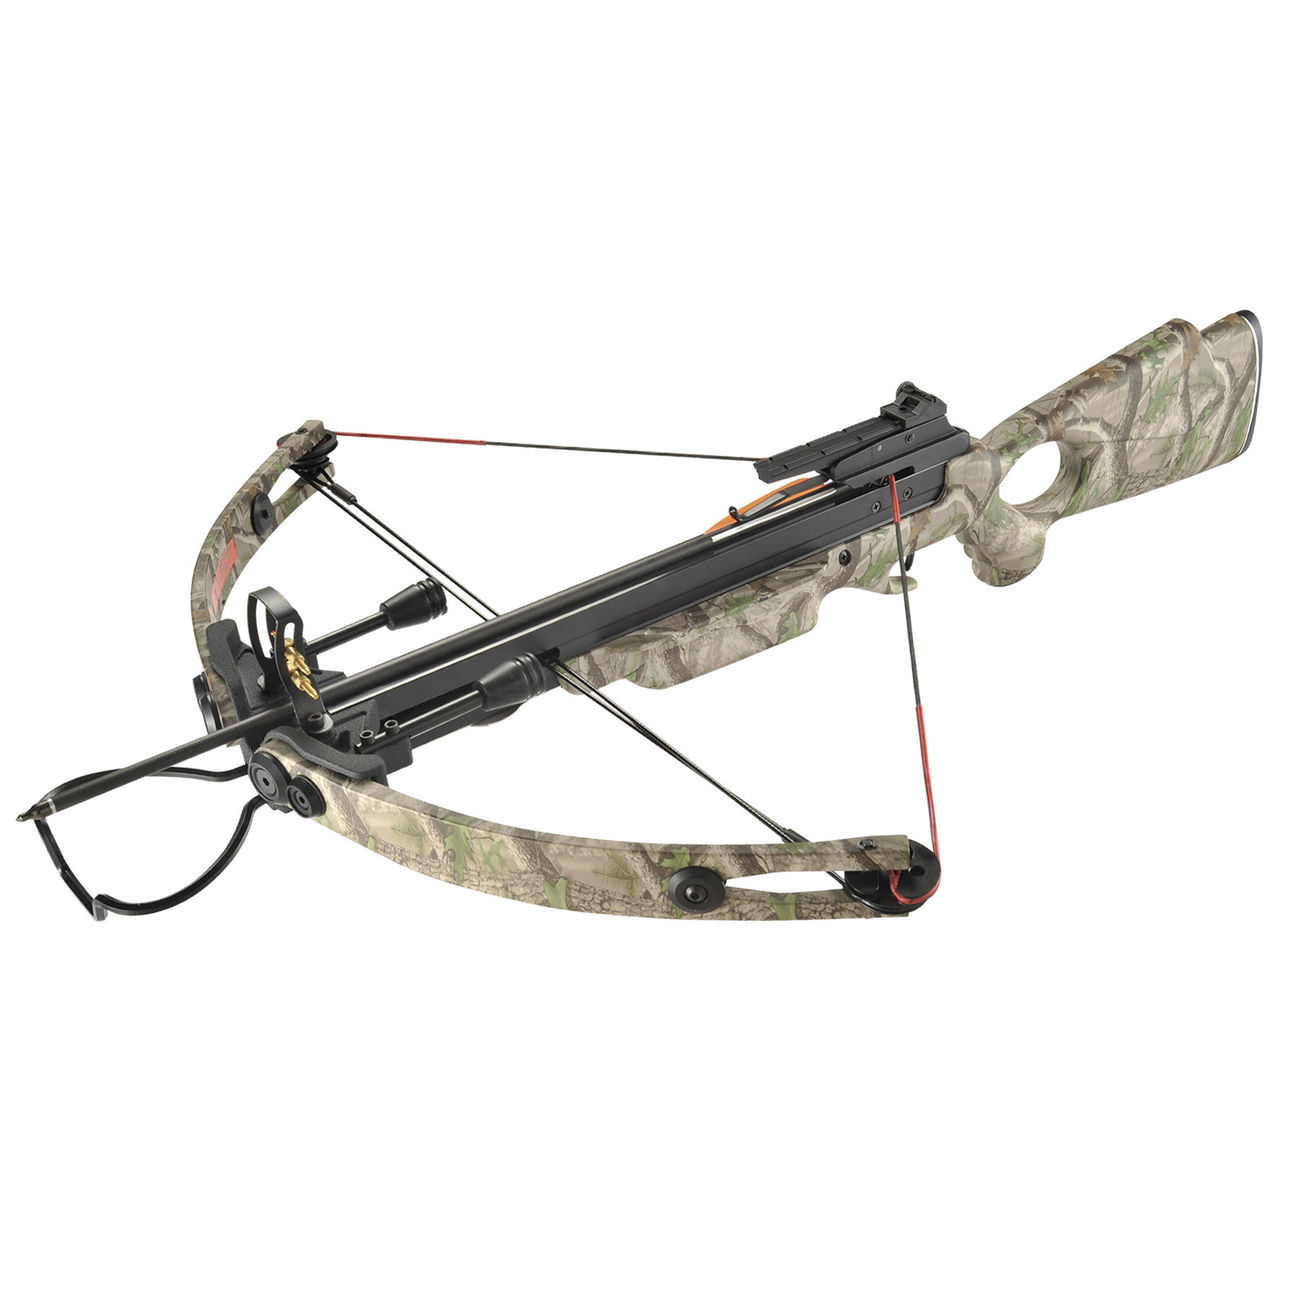 MK Compound Armbrust 150 lbs Green Camo 0